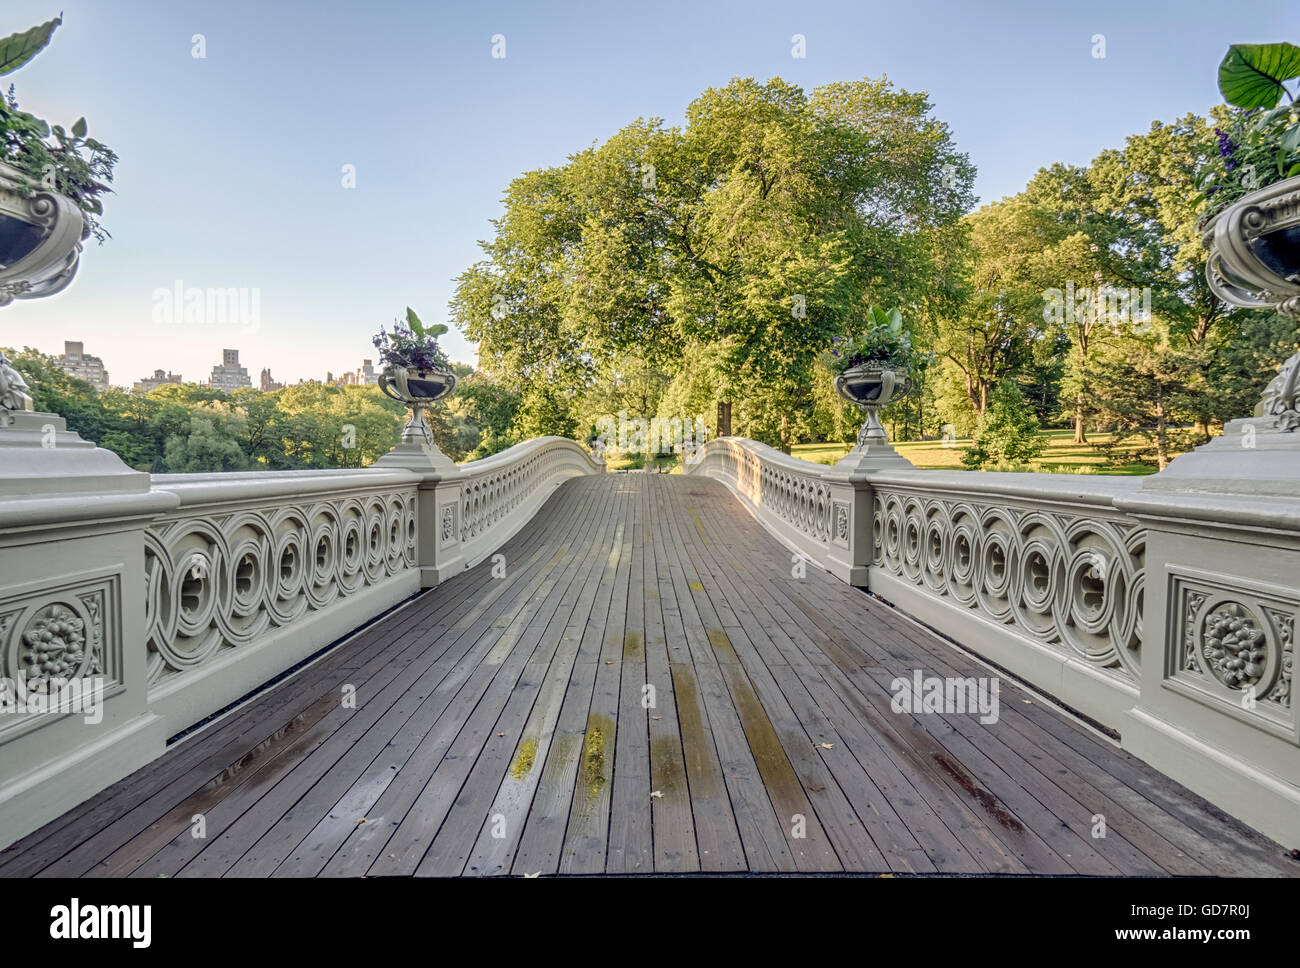 Bow bridge in early morning after summer rain with blue sky - Stock Image